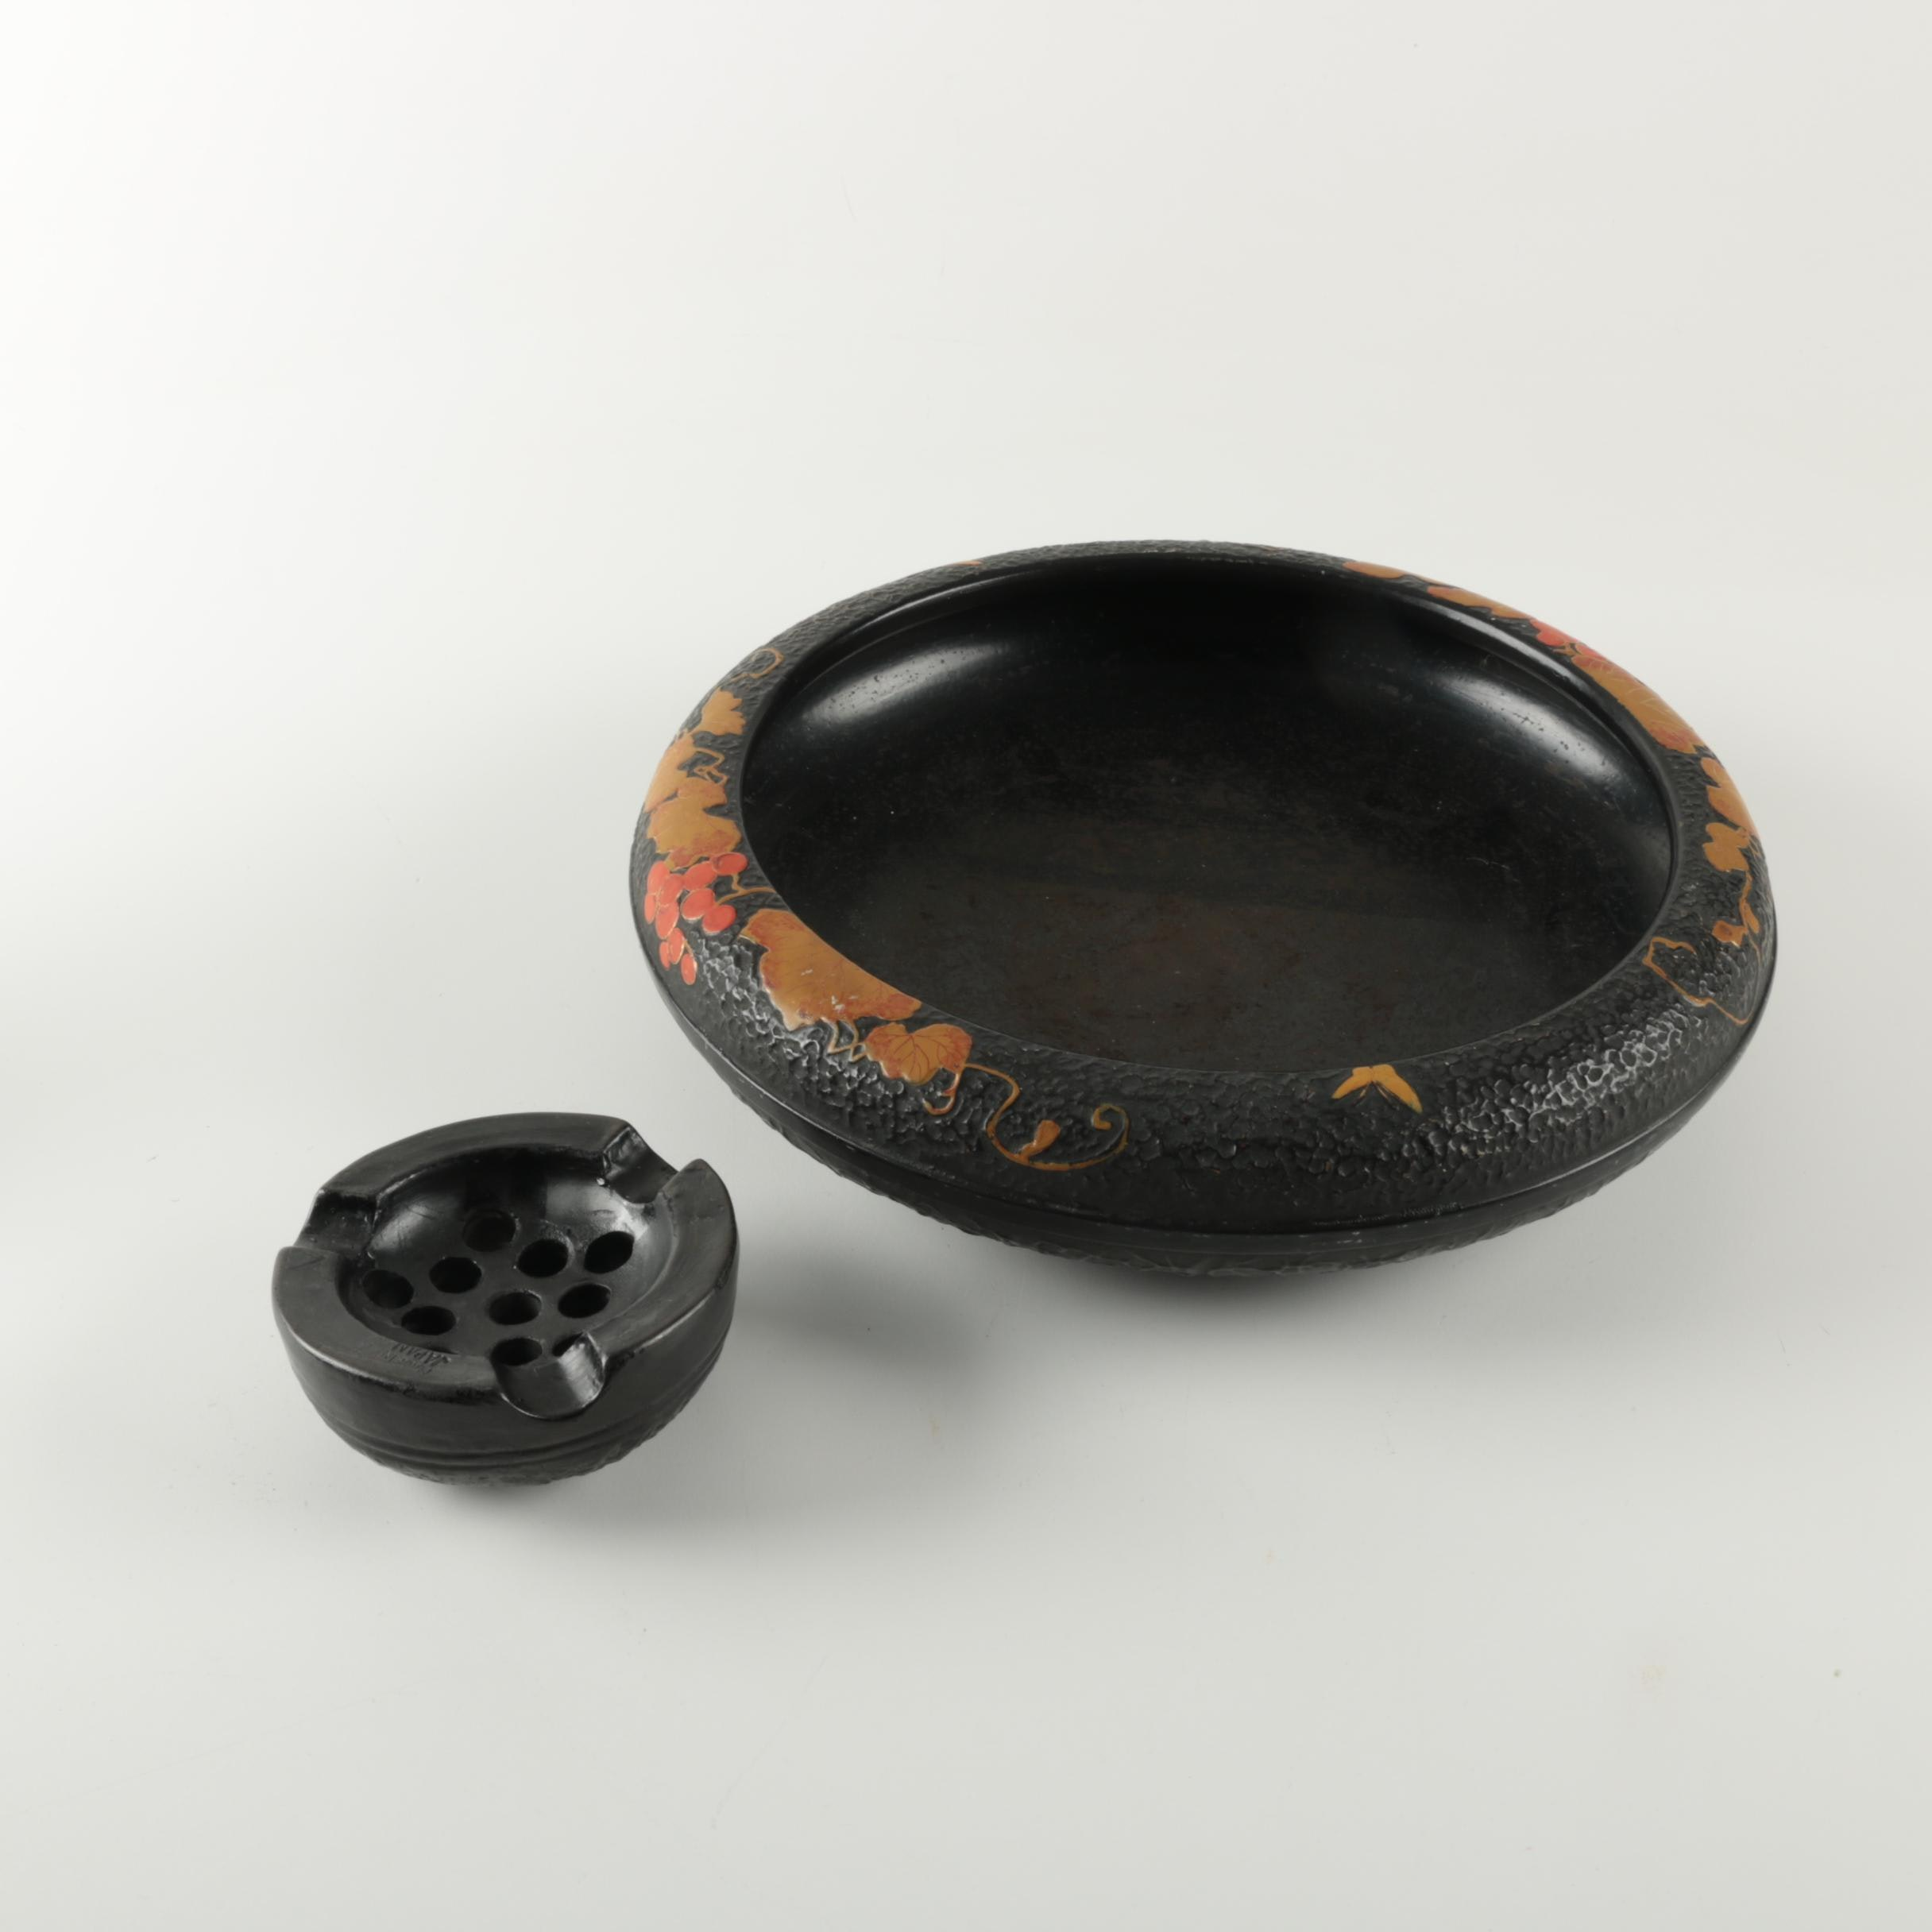 Vintage Japanese Flower Bowl with Frog